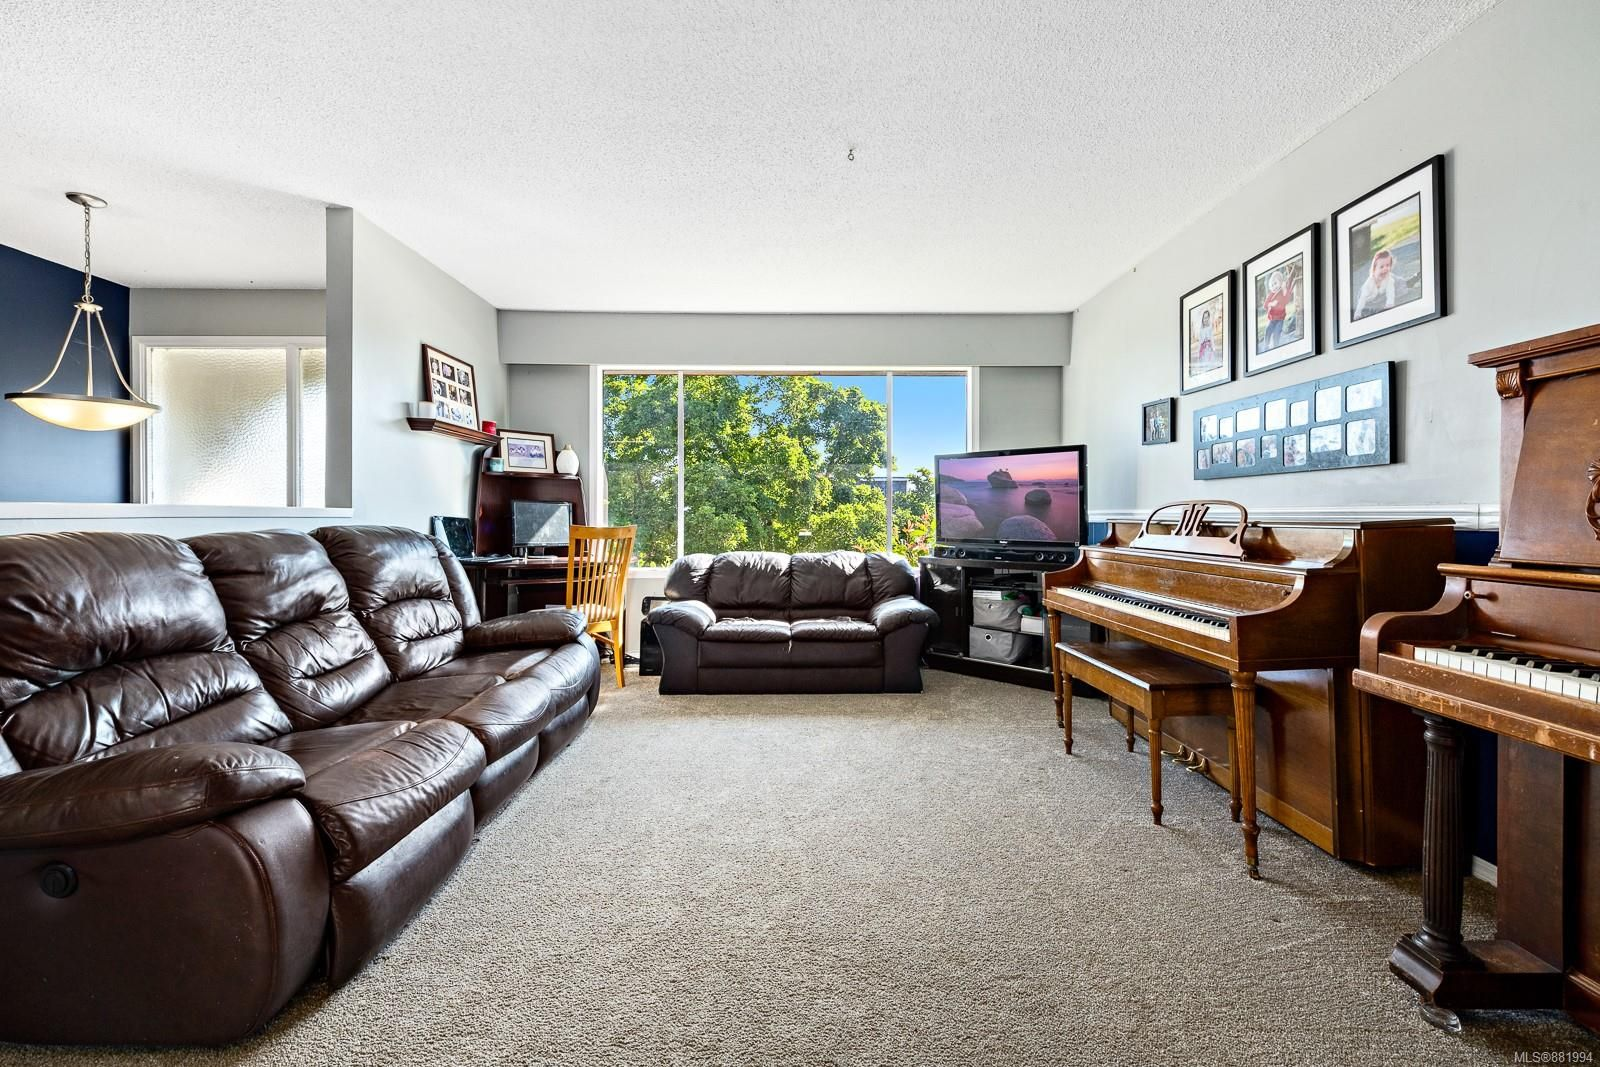 Photo 7: Photos: 1935 Fitzgerald Ave in : CV Courtenay City House for sale (Comox Valley)  : MLS®# 881994